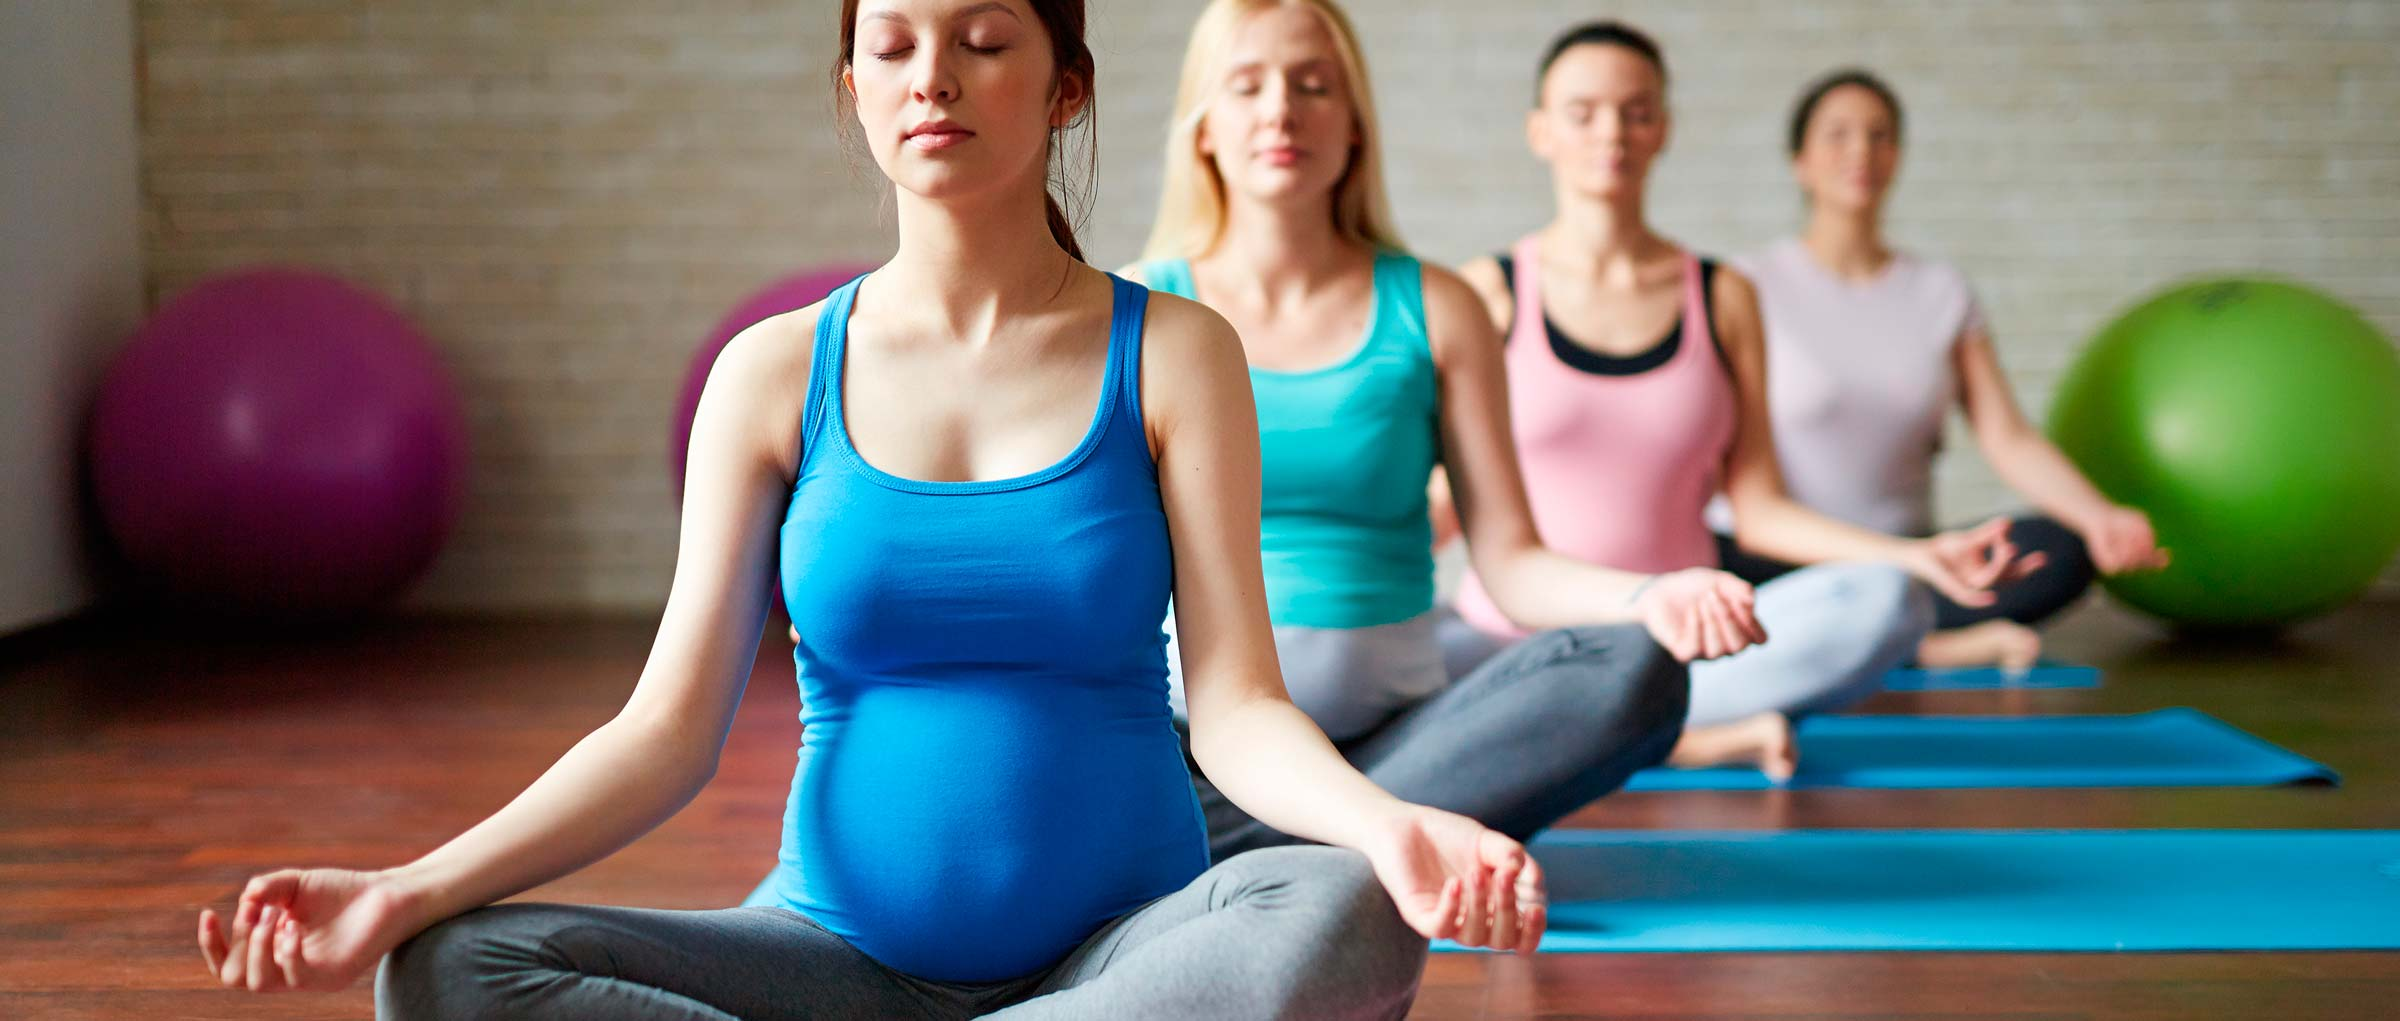 Imagen: Yoga sessions for pregnant women